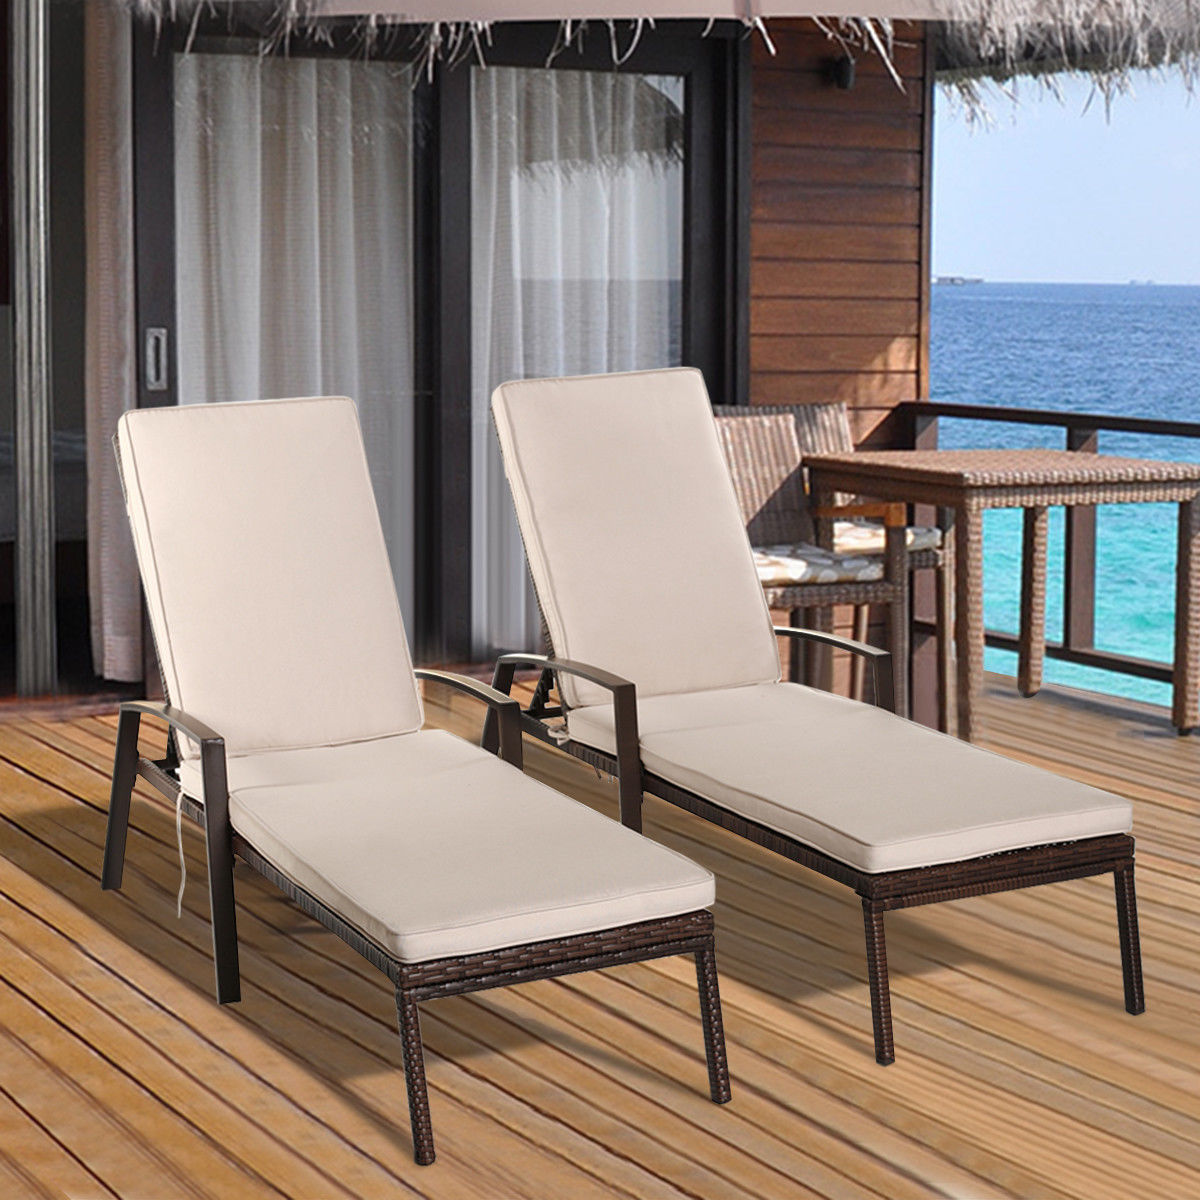 lounge chair outside chairs with caning outdoor chaise lounges walmart com product image costway 2pcs patio rattan garden furniture adjustable back w cushion